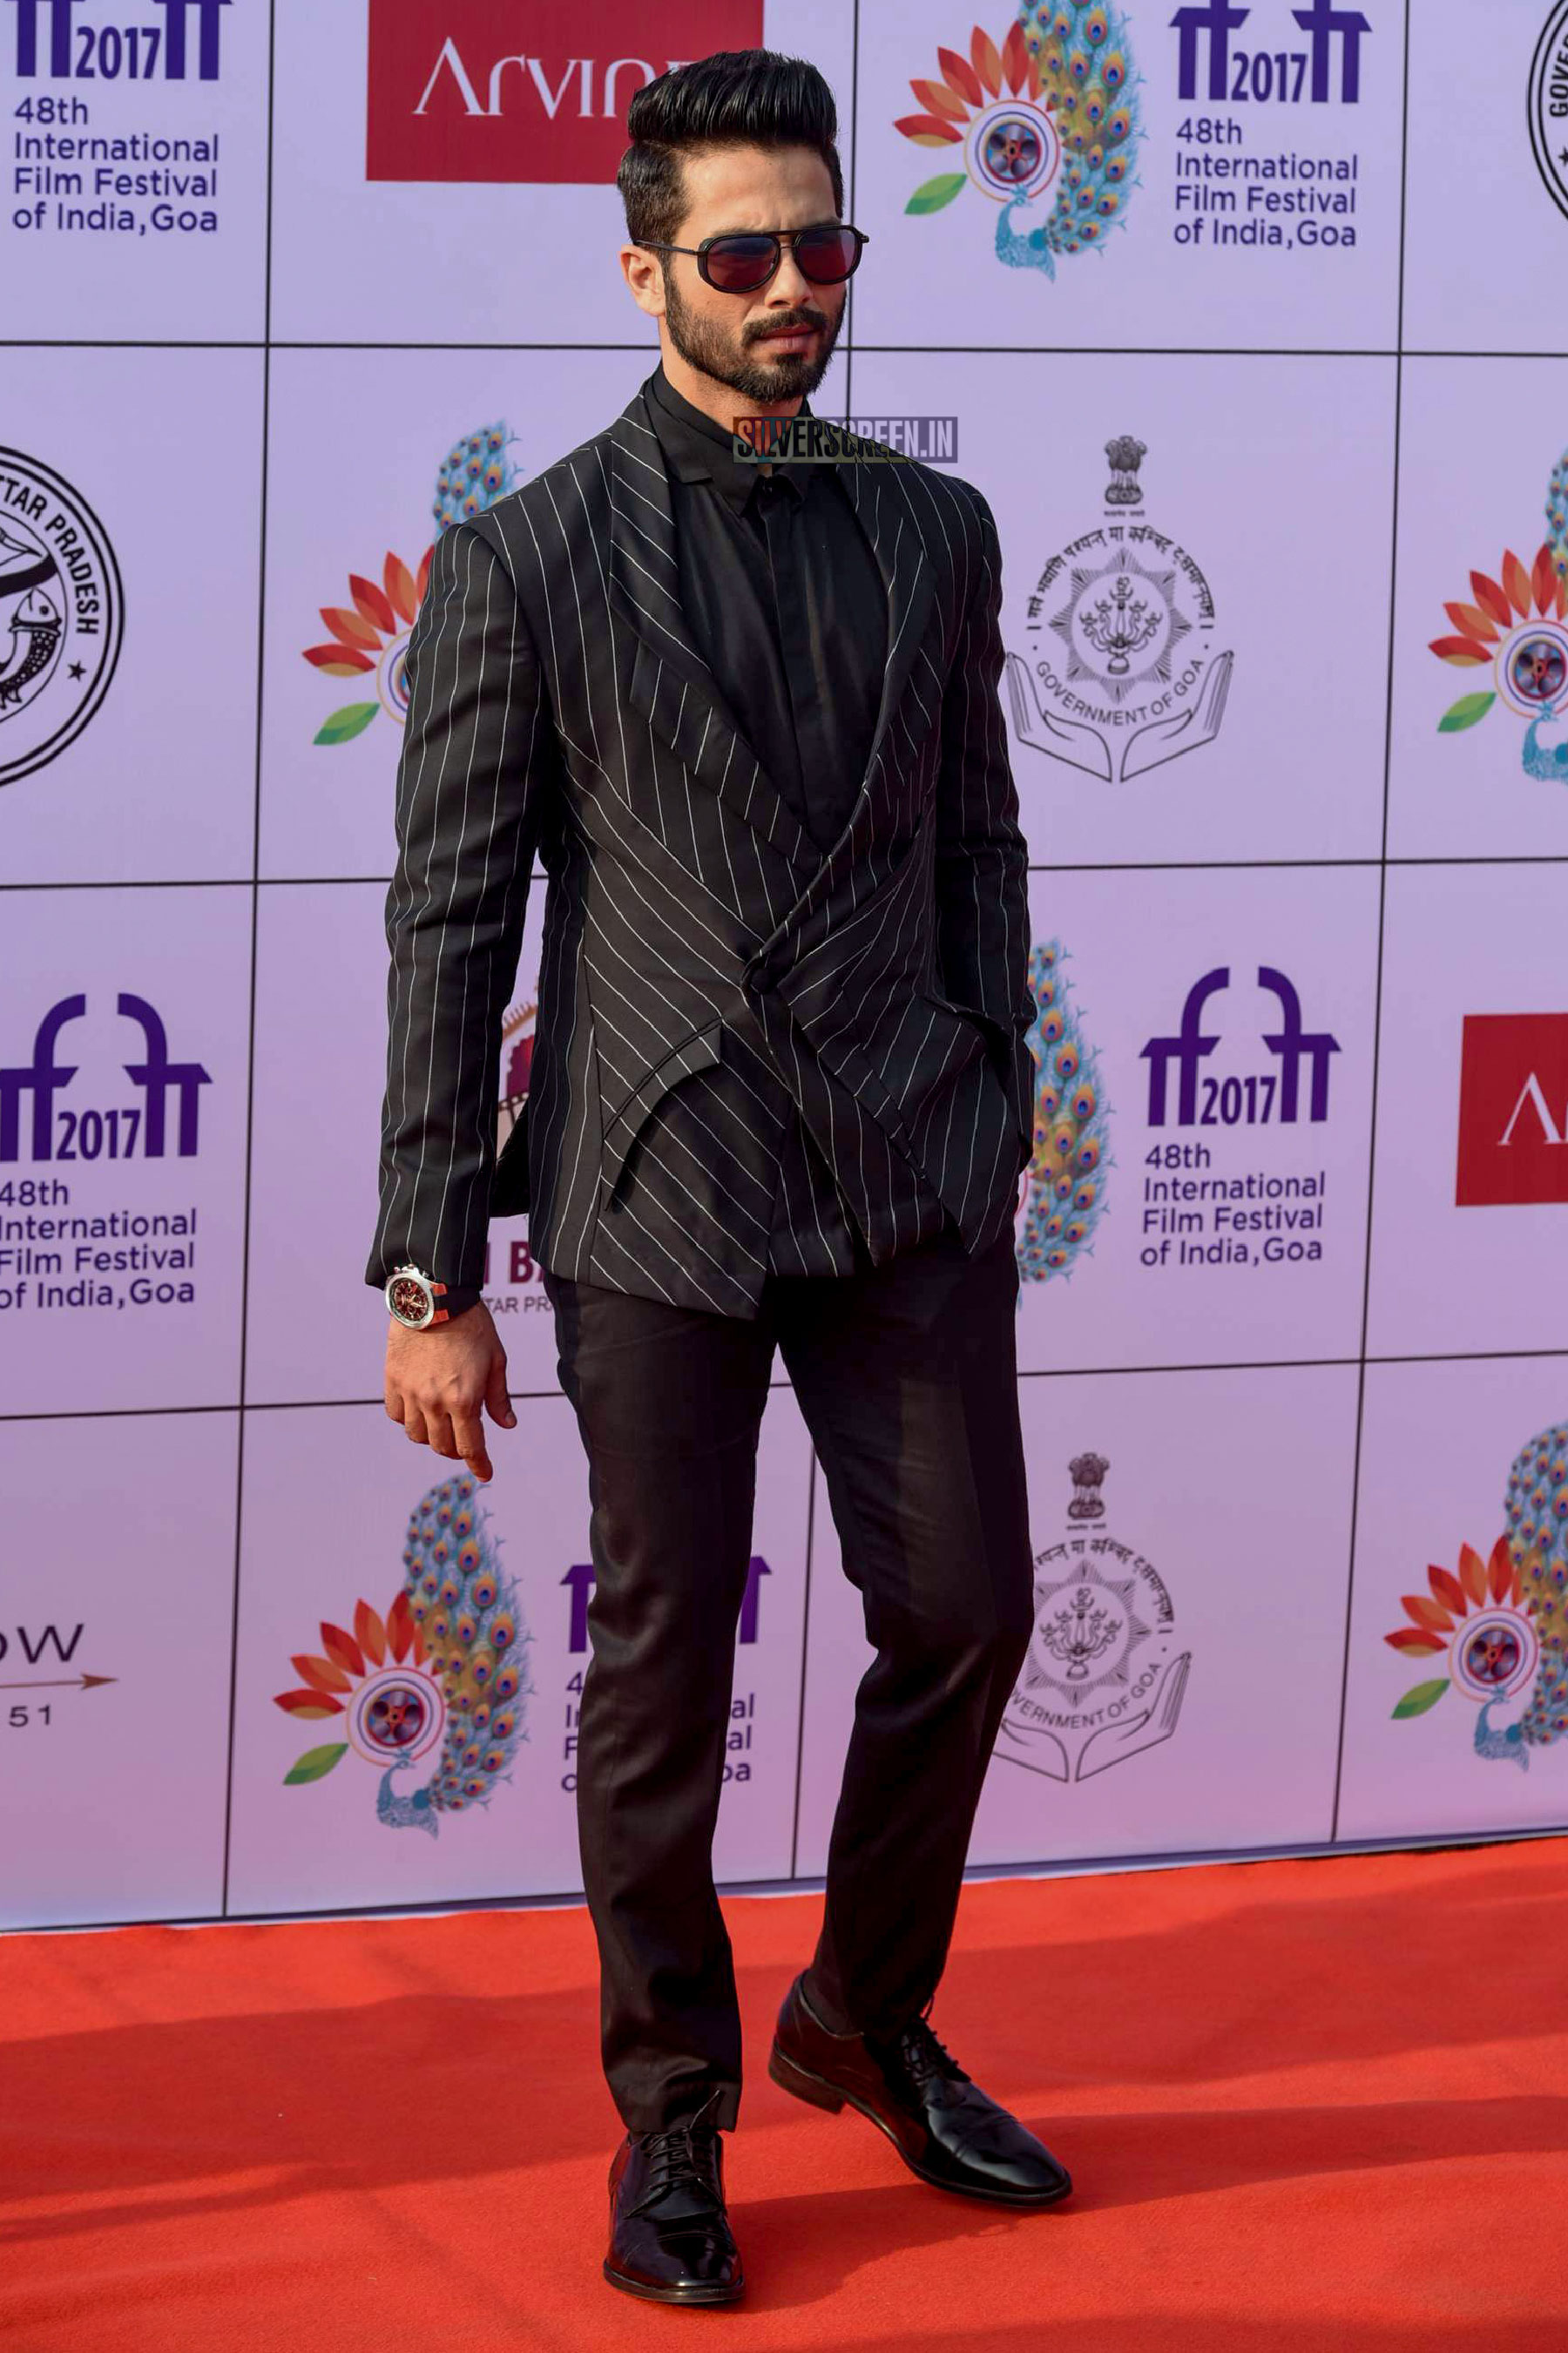 Shahid Kapoor on the first day of International Film Festival of India (IFFI) in Goa.